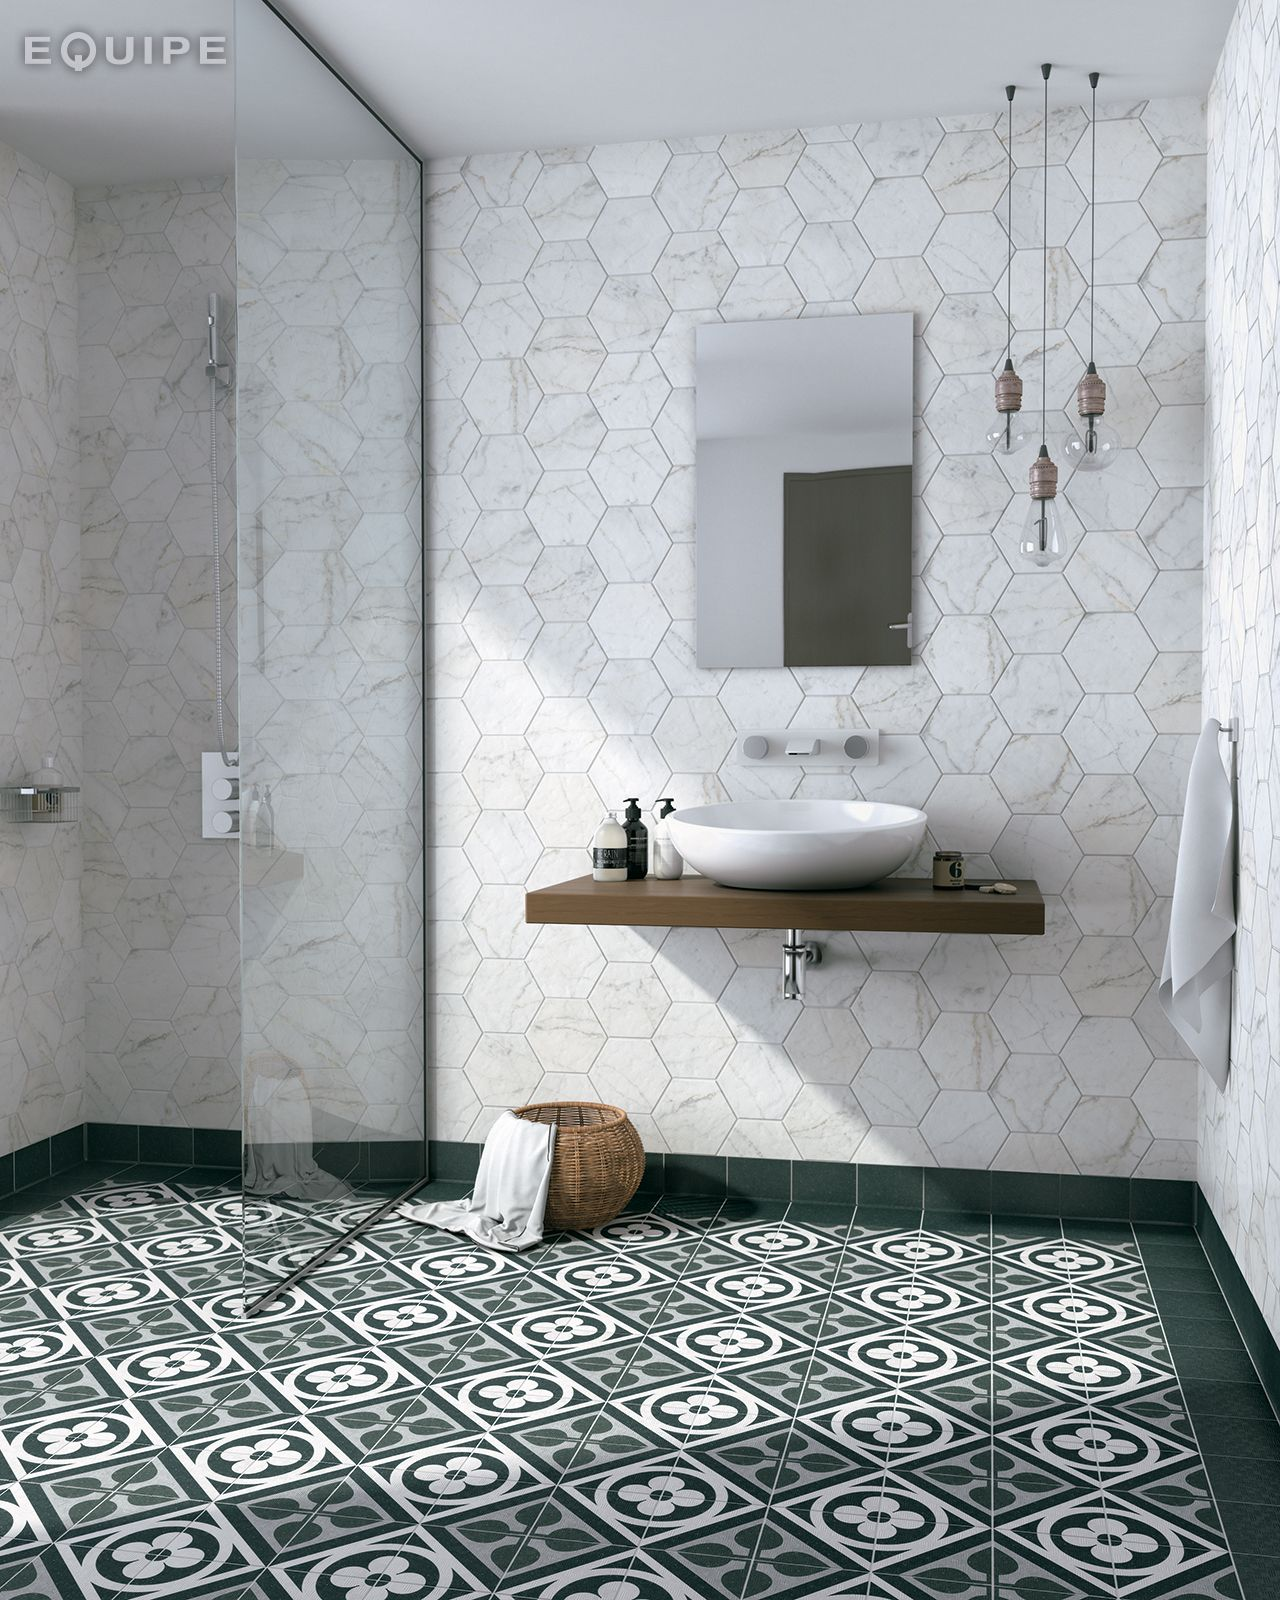 Sasha Chris Badkamer Carrara Hexagon 17 5x20 Area 15 Graphite Flower Black 15x15